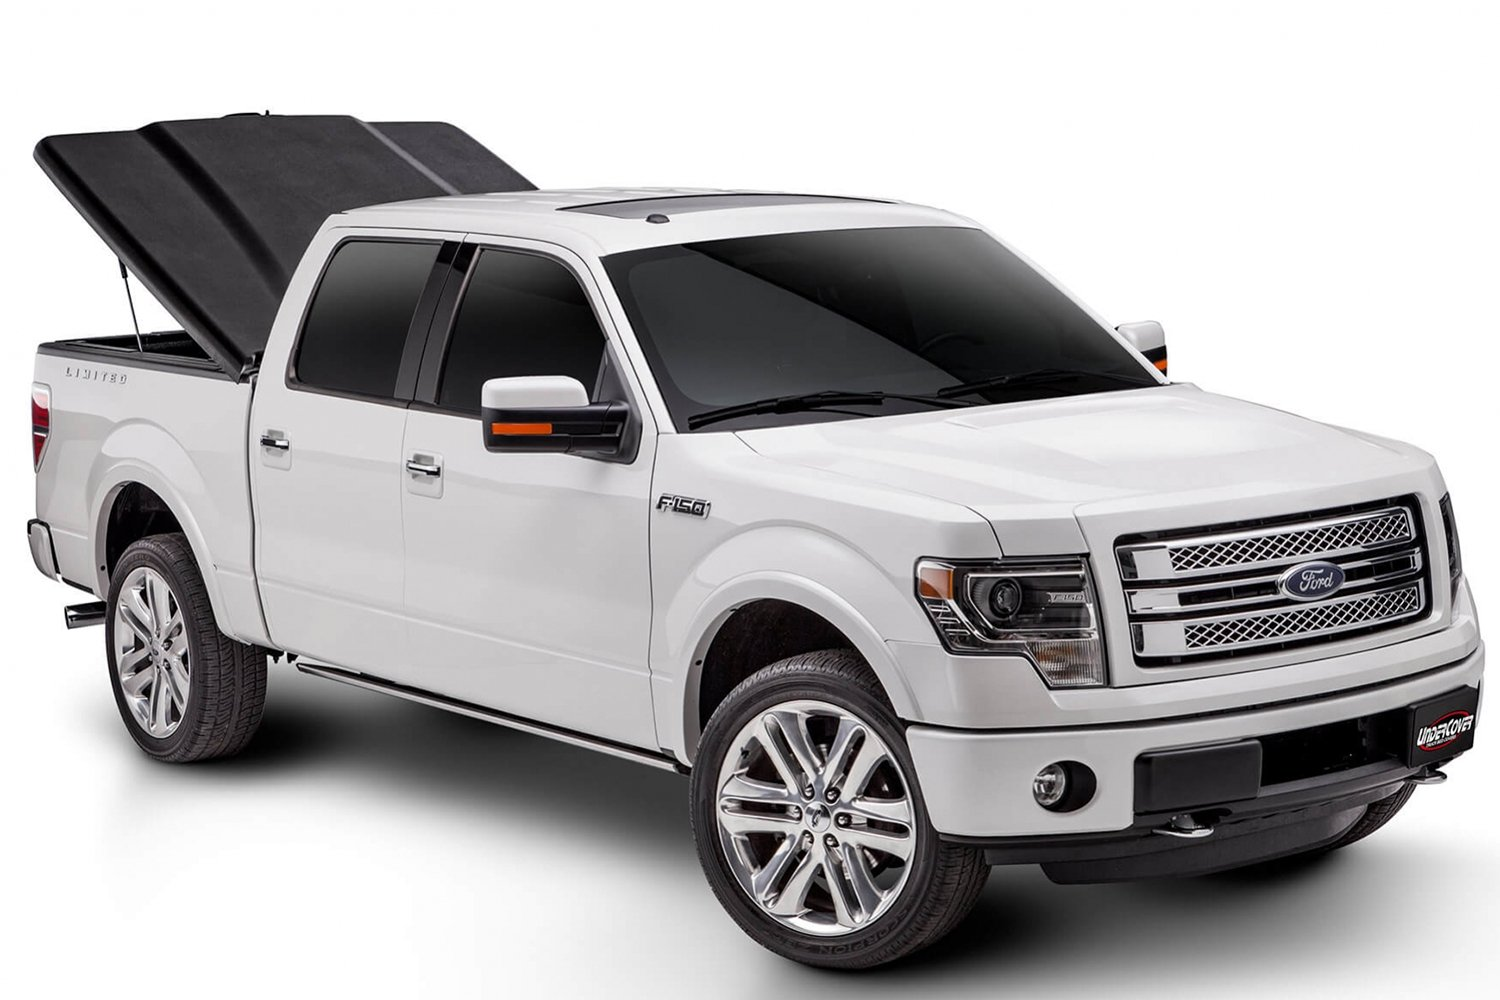 cover hard bed ap one lithium for by gray undercover metallic piece tonneau